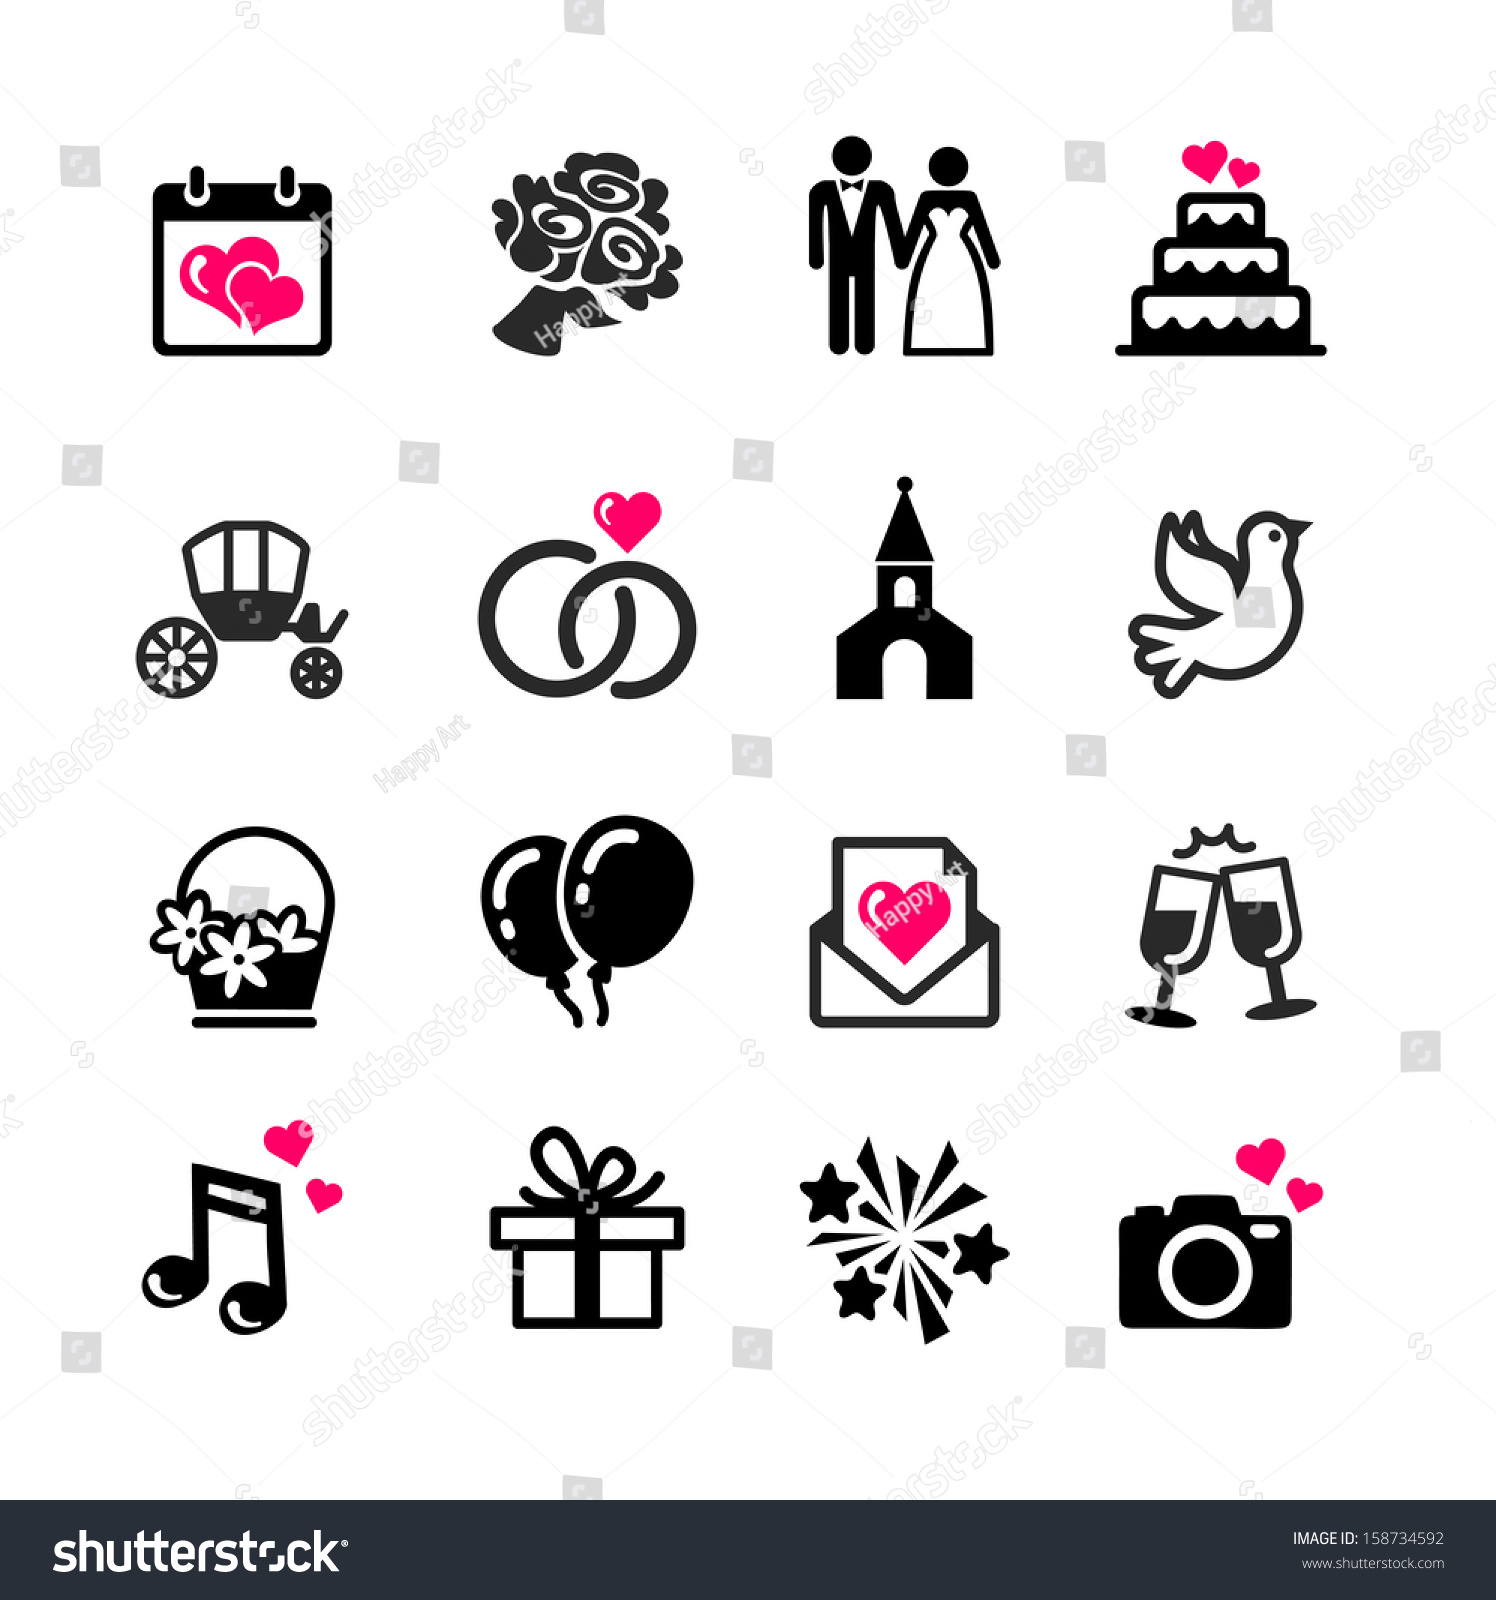 dating website icons for wedding